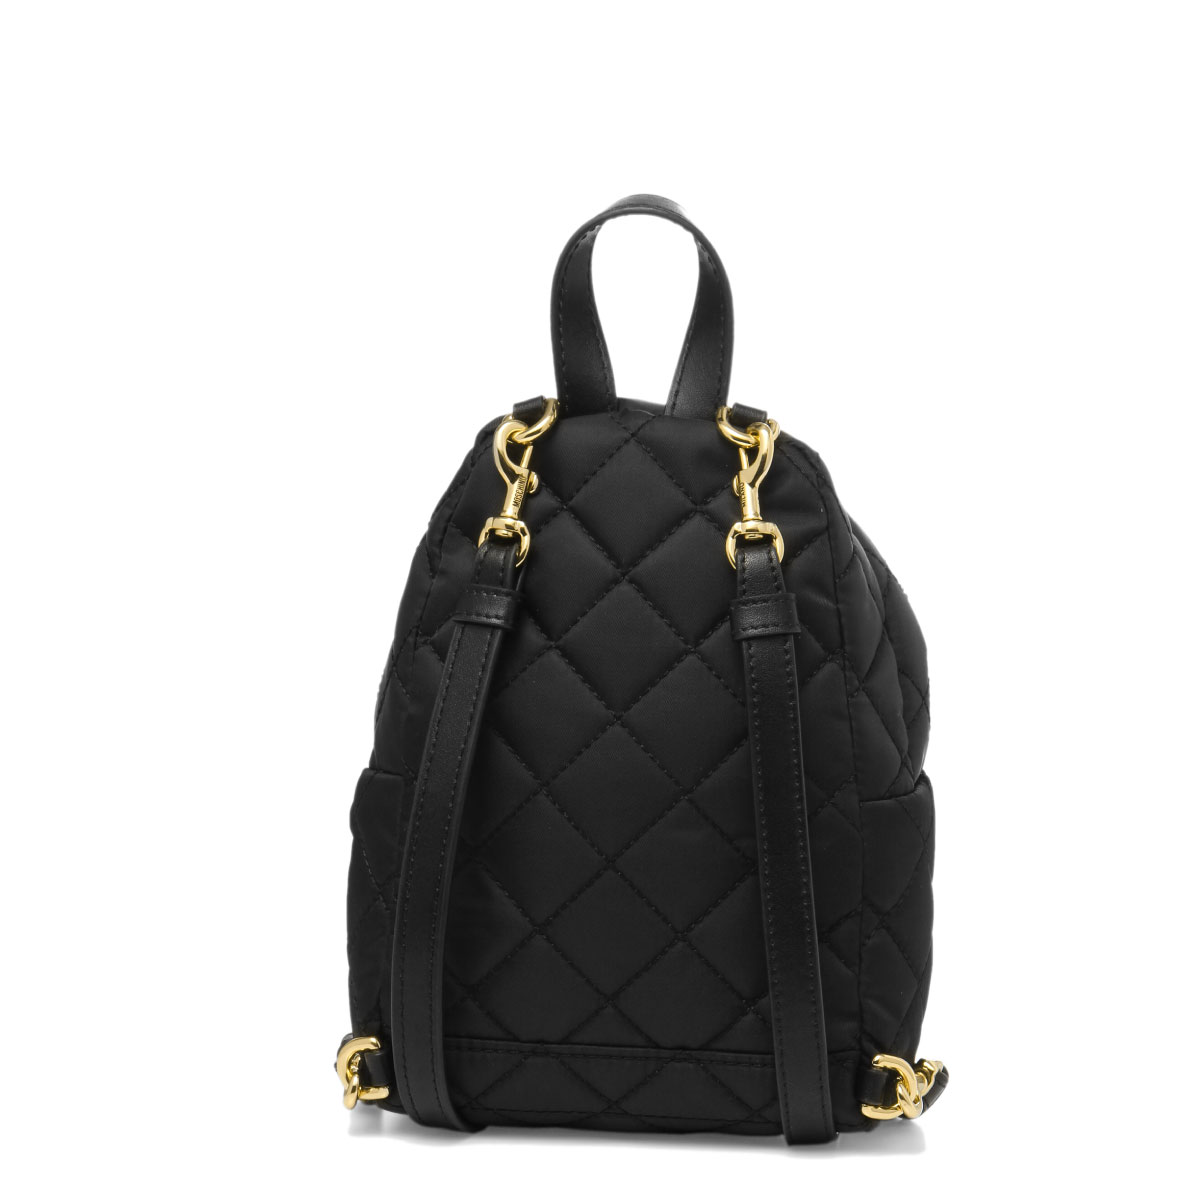 8ff699f2644 ... 7609 Moschino MOSCHINO bag lady 8201 2555 shoulders backpack BLACK  black belonging to ...